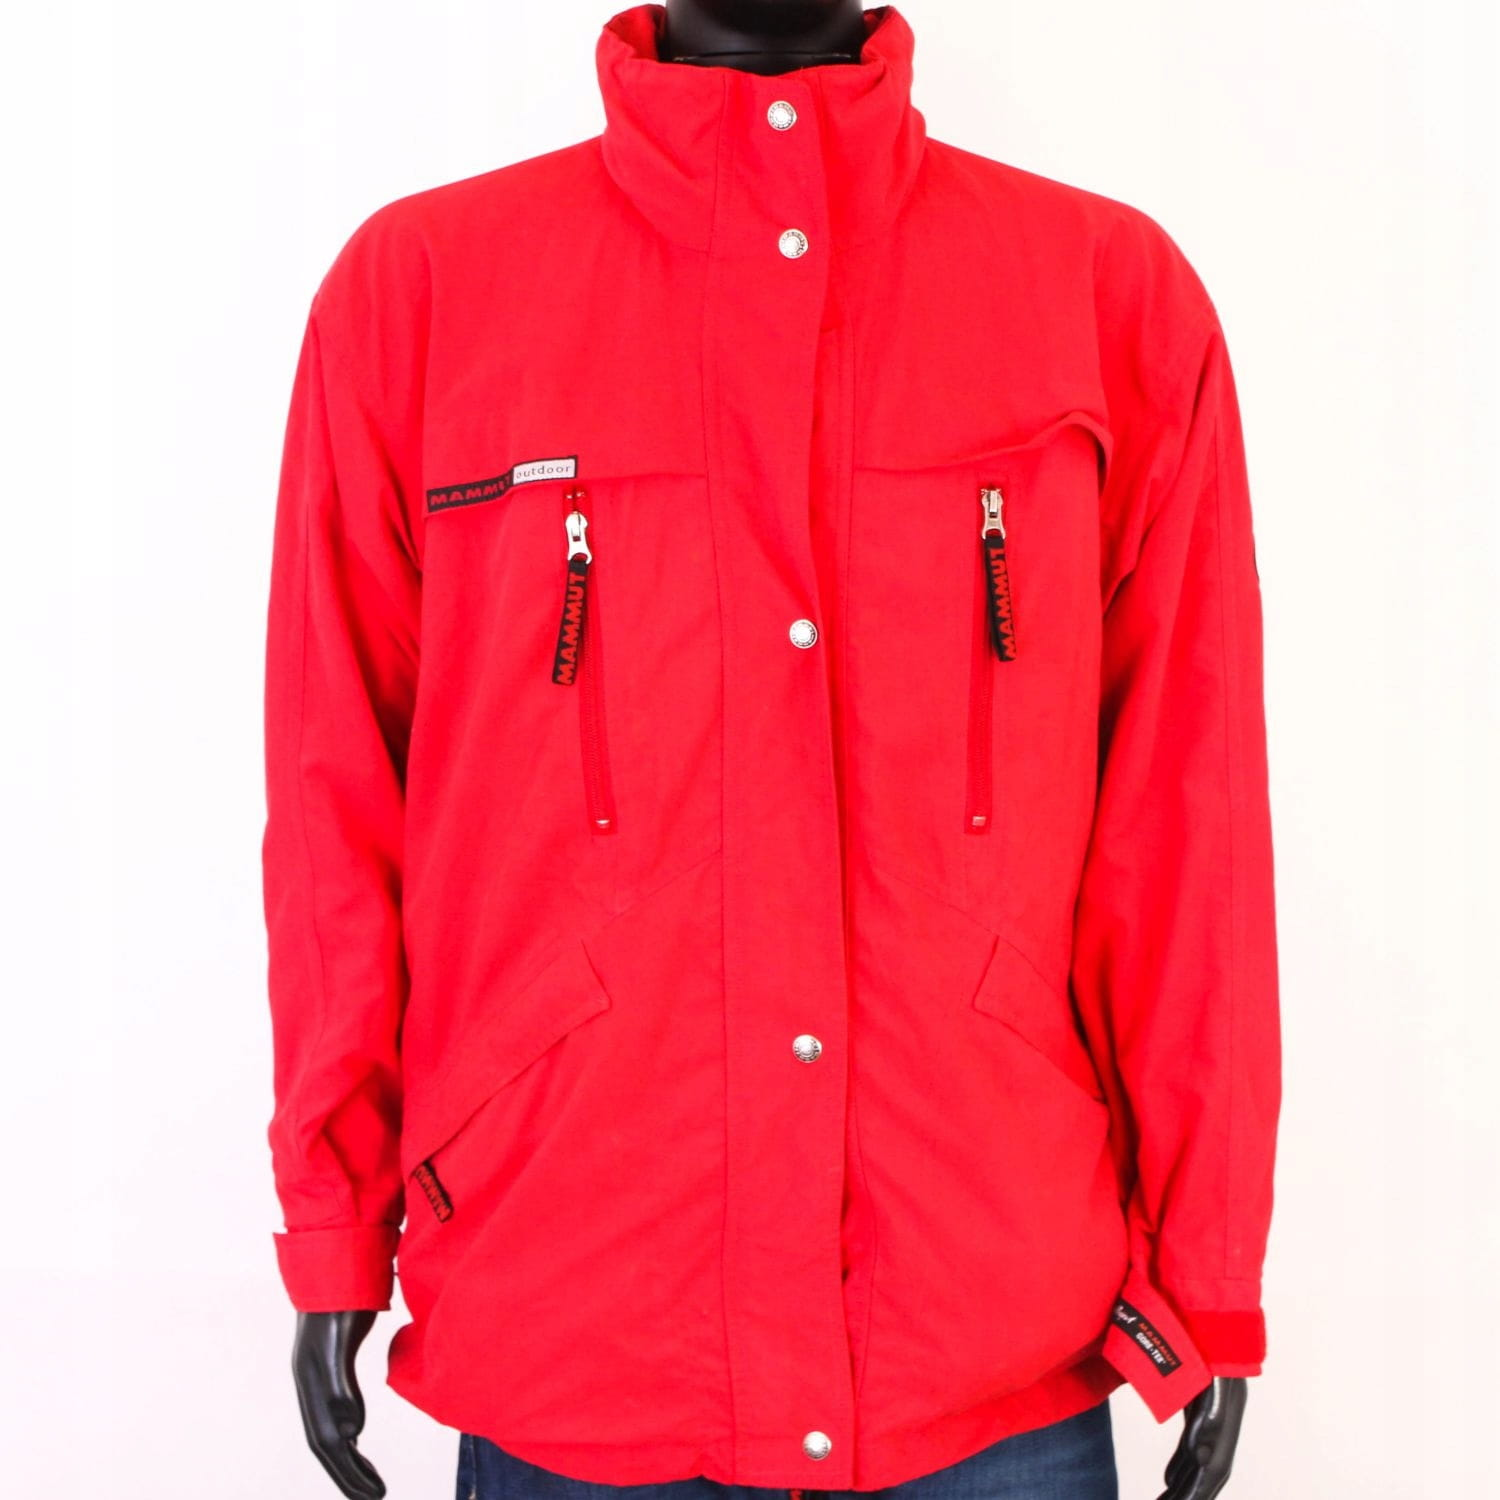 big sale 646b2 76838 Details about T Mammut Outdoor Mens Jacket Membrane Red XL